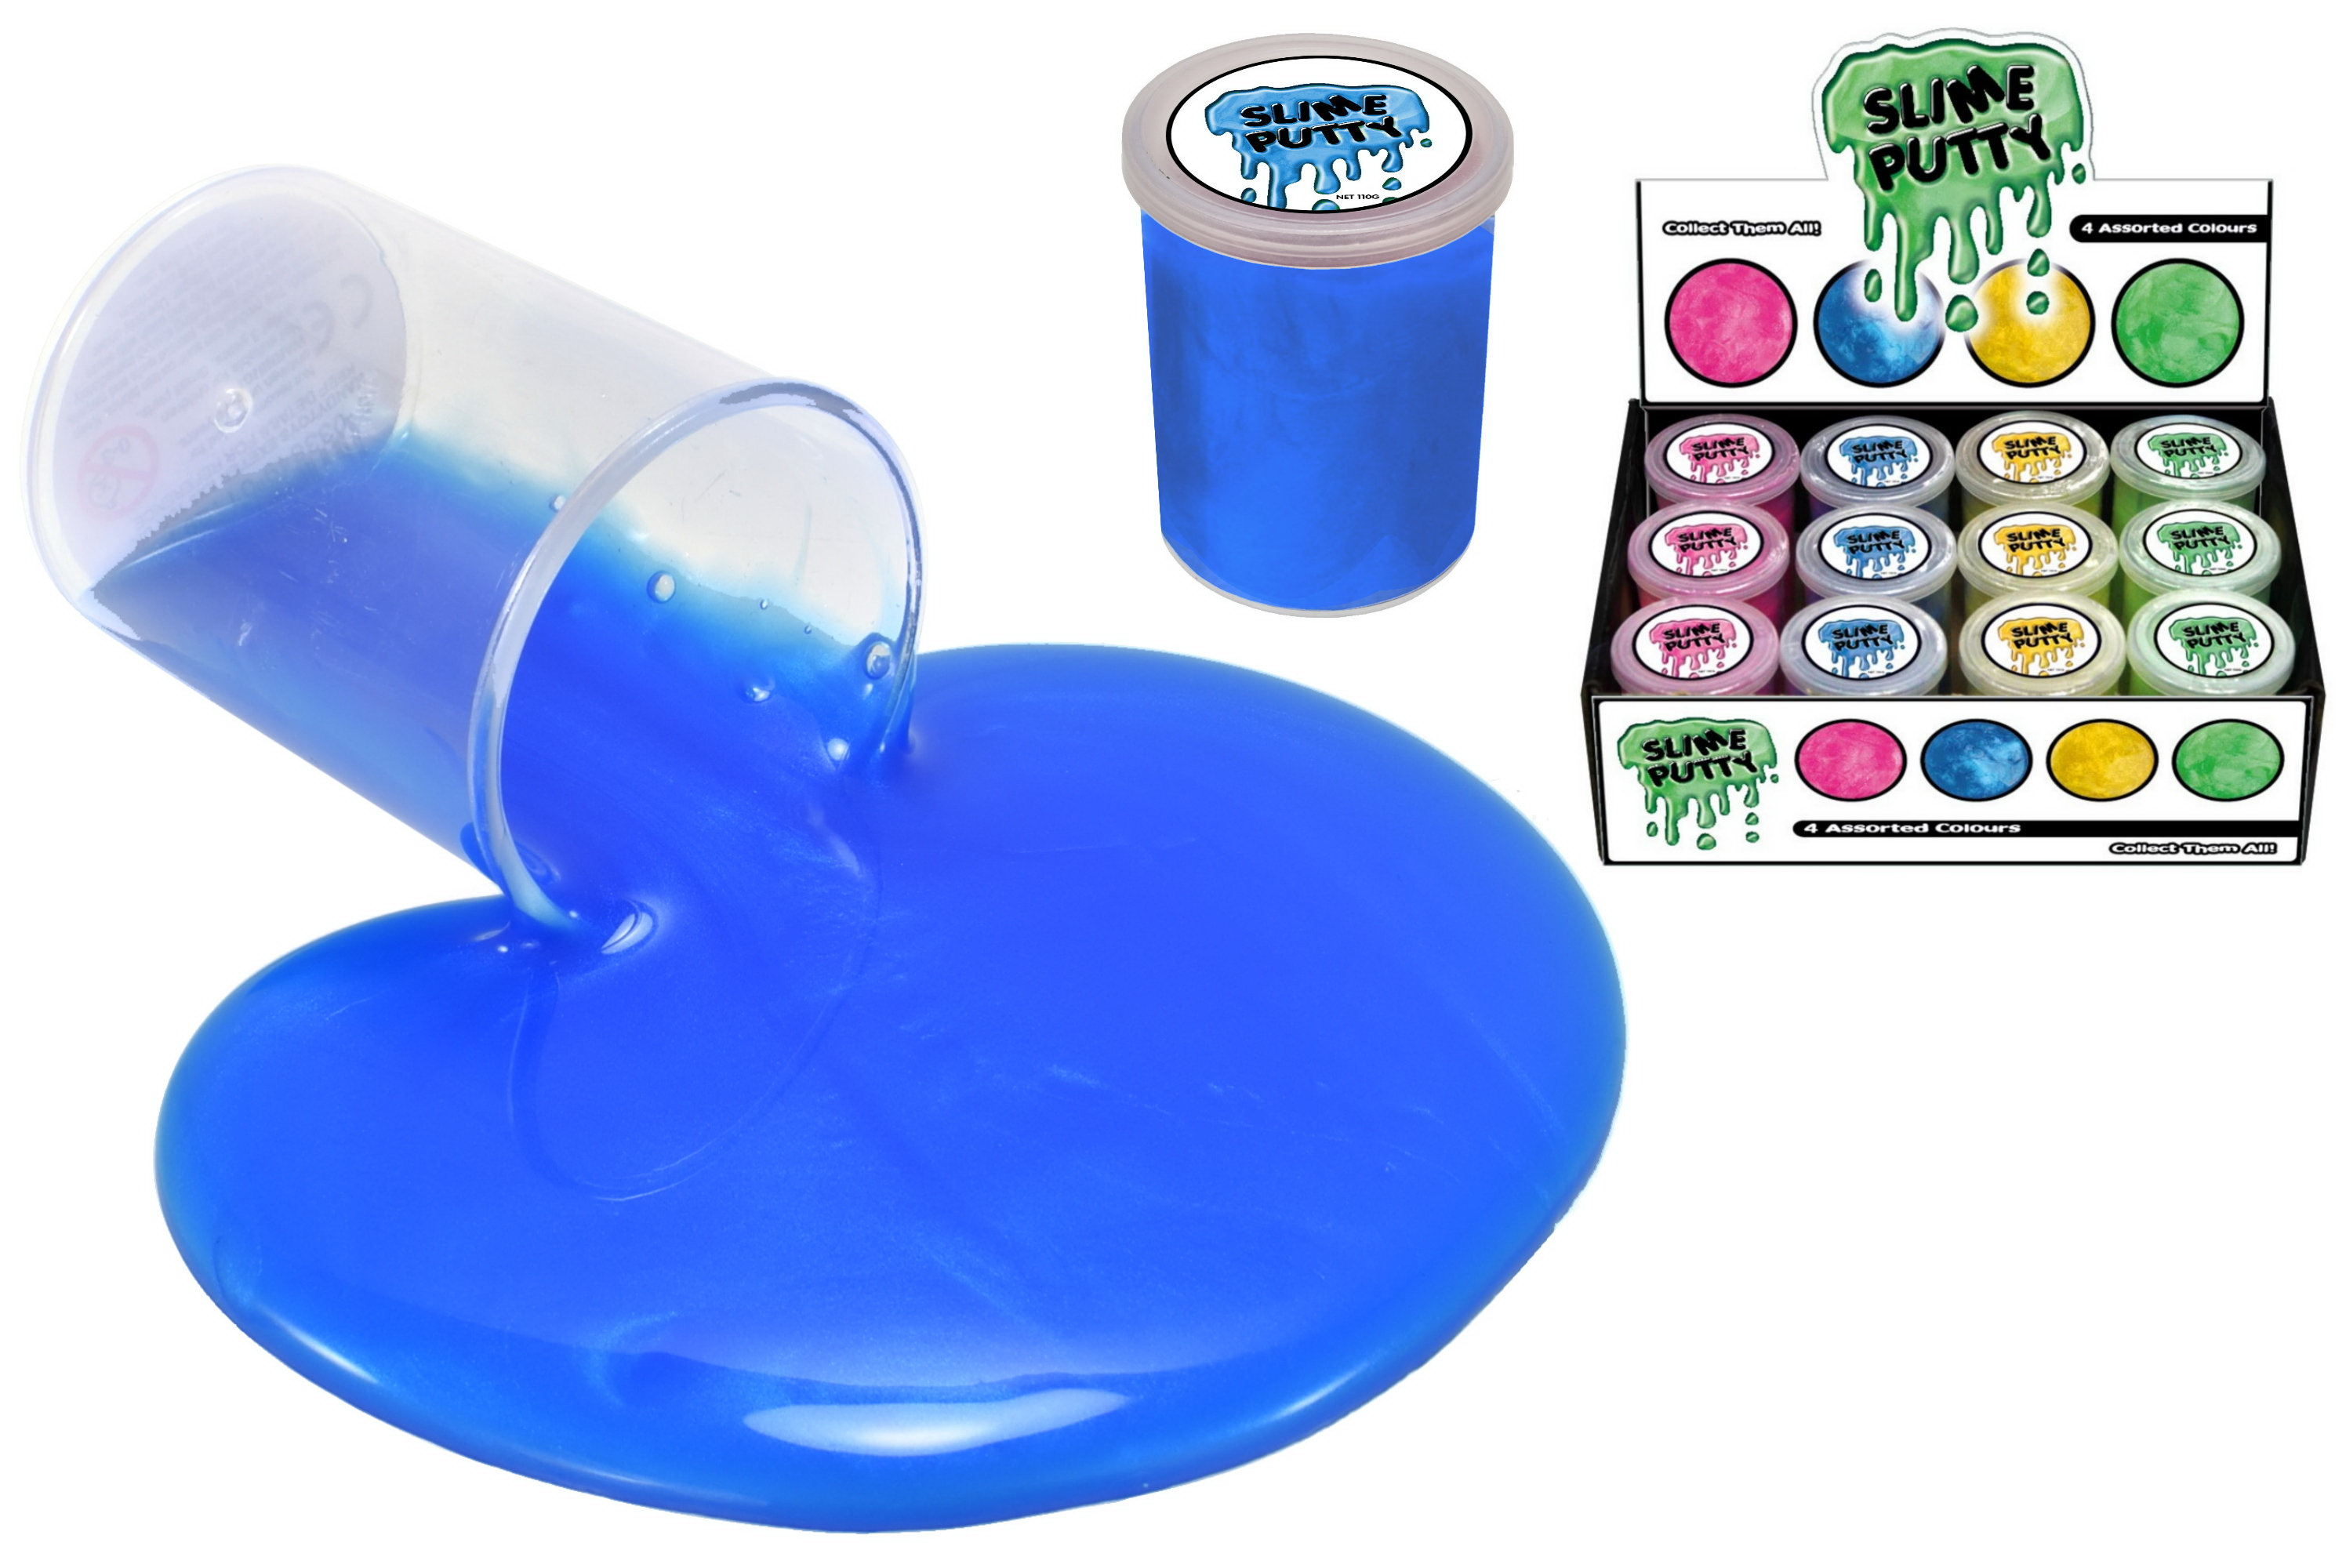 Slime Putty (110g) In Display Box